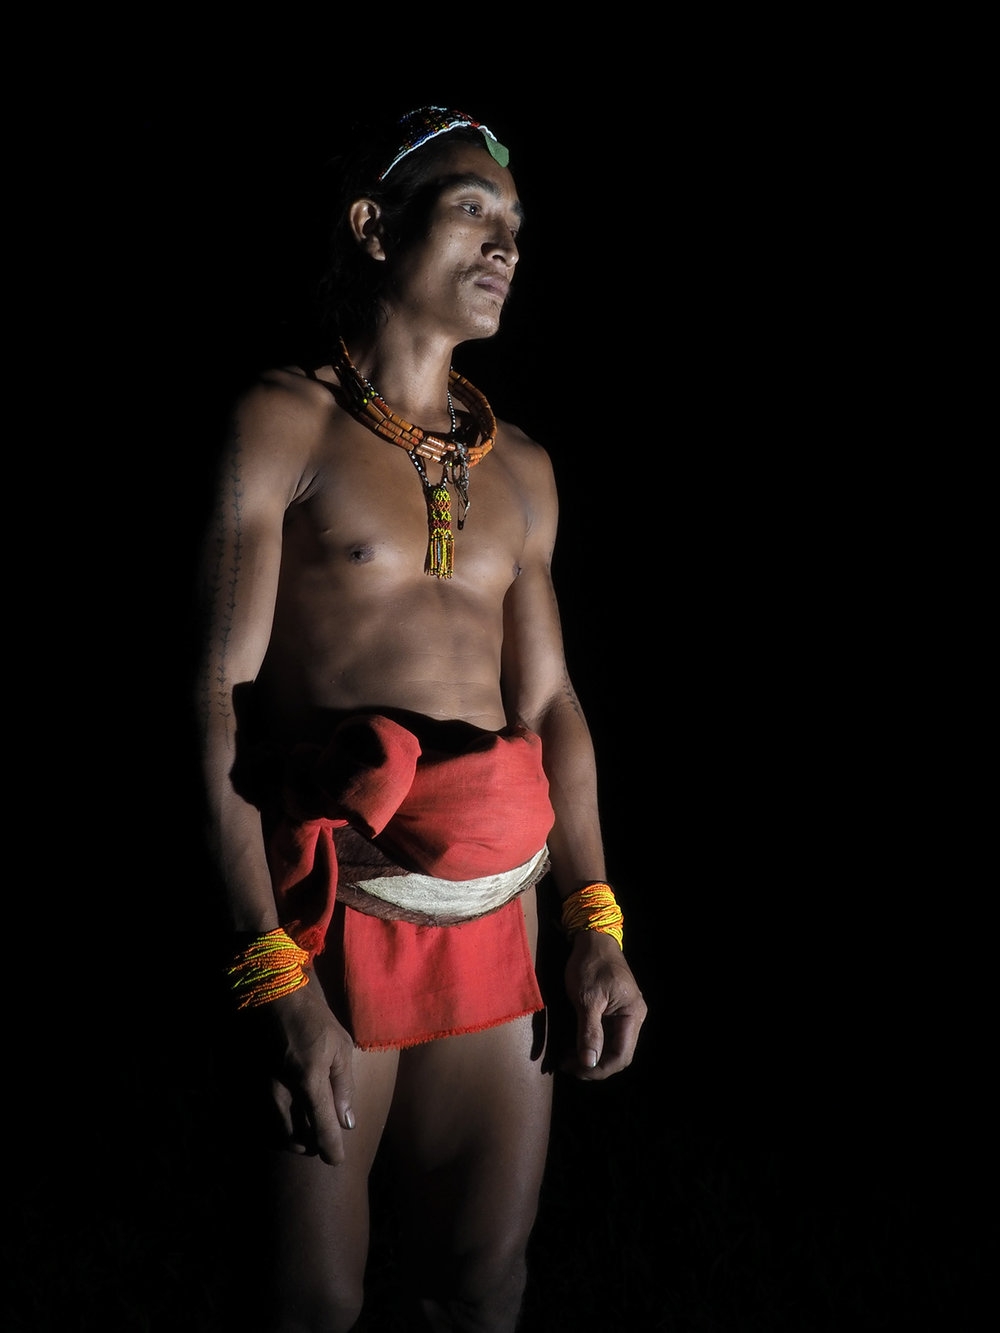 Ranjan_Ramchandani_Portriat of the Mentawai tribesman.jpg